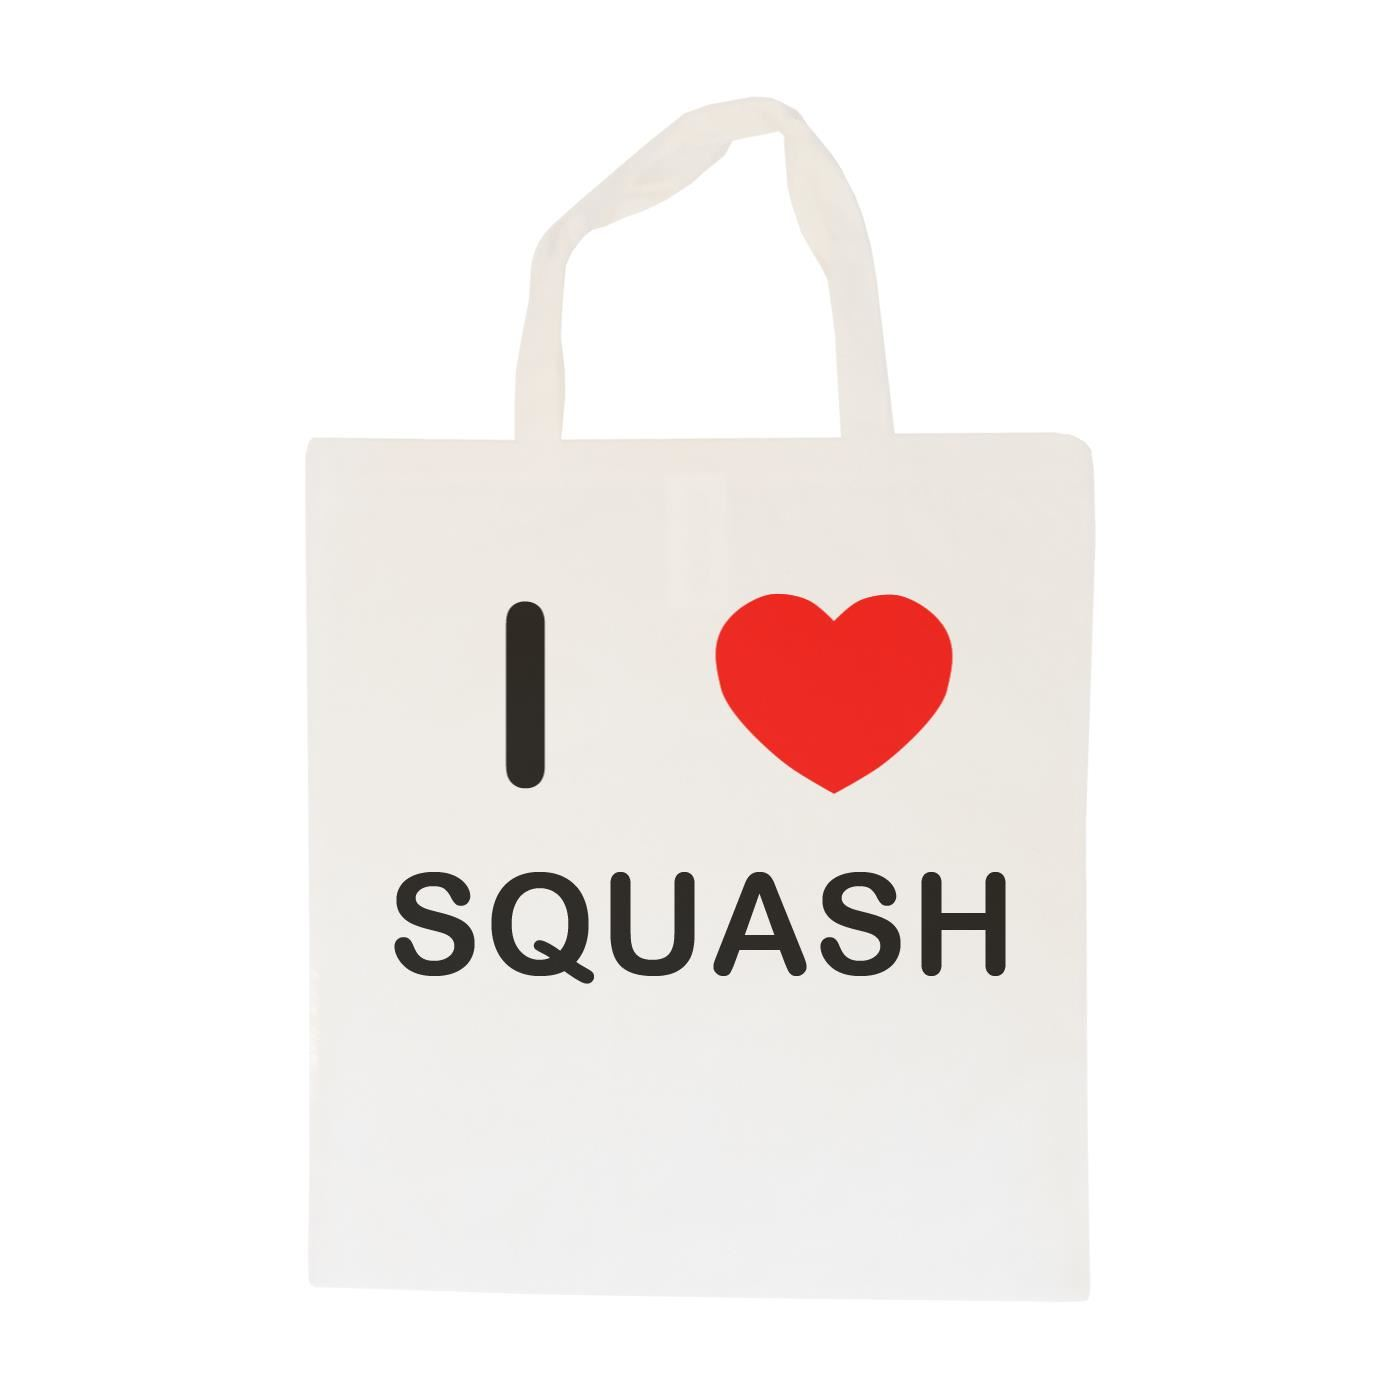 I Love Squash - Cotton Bag | Size choice Tote, Shopper or Sling